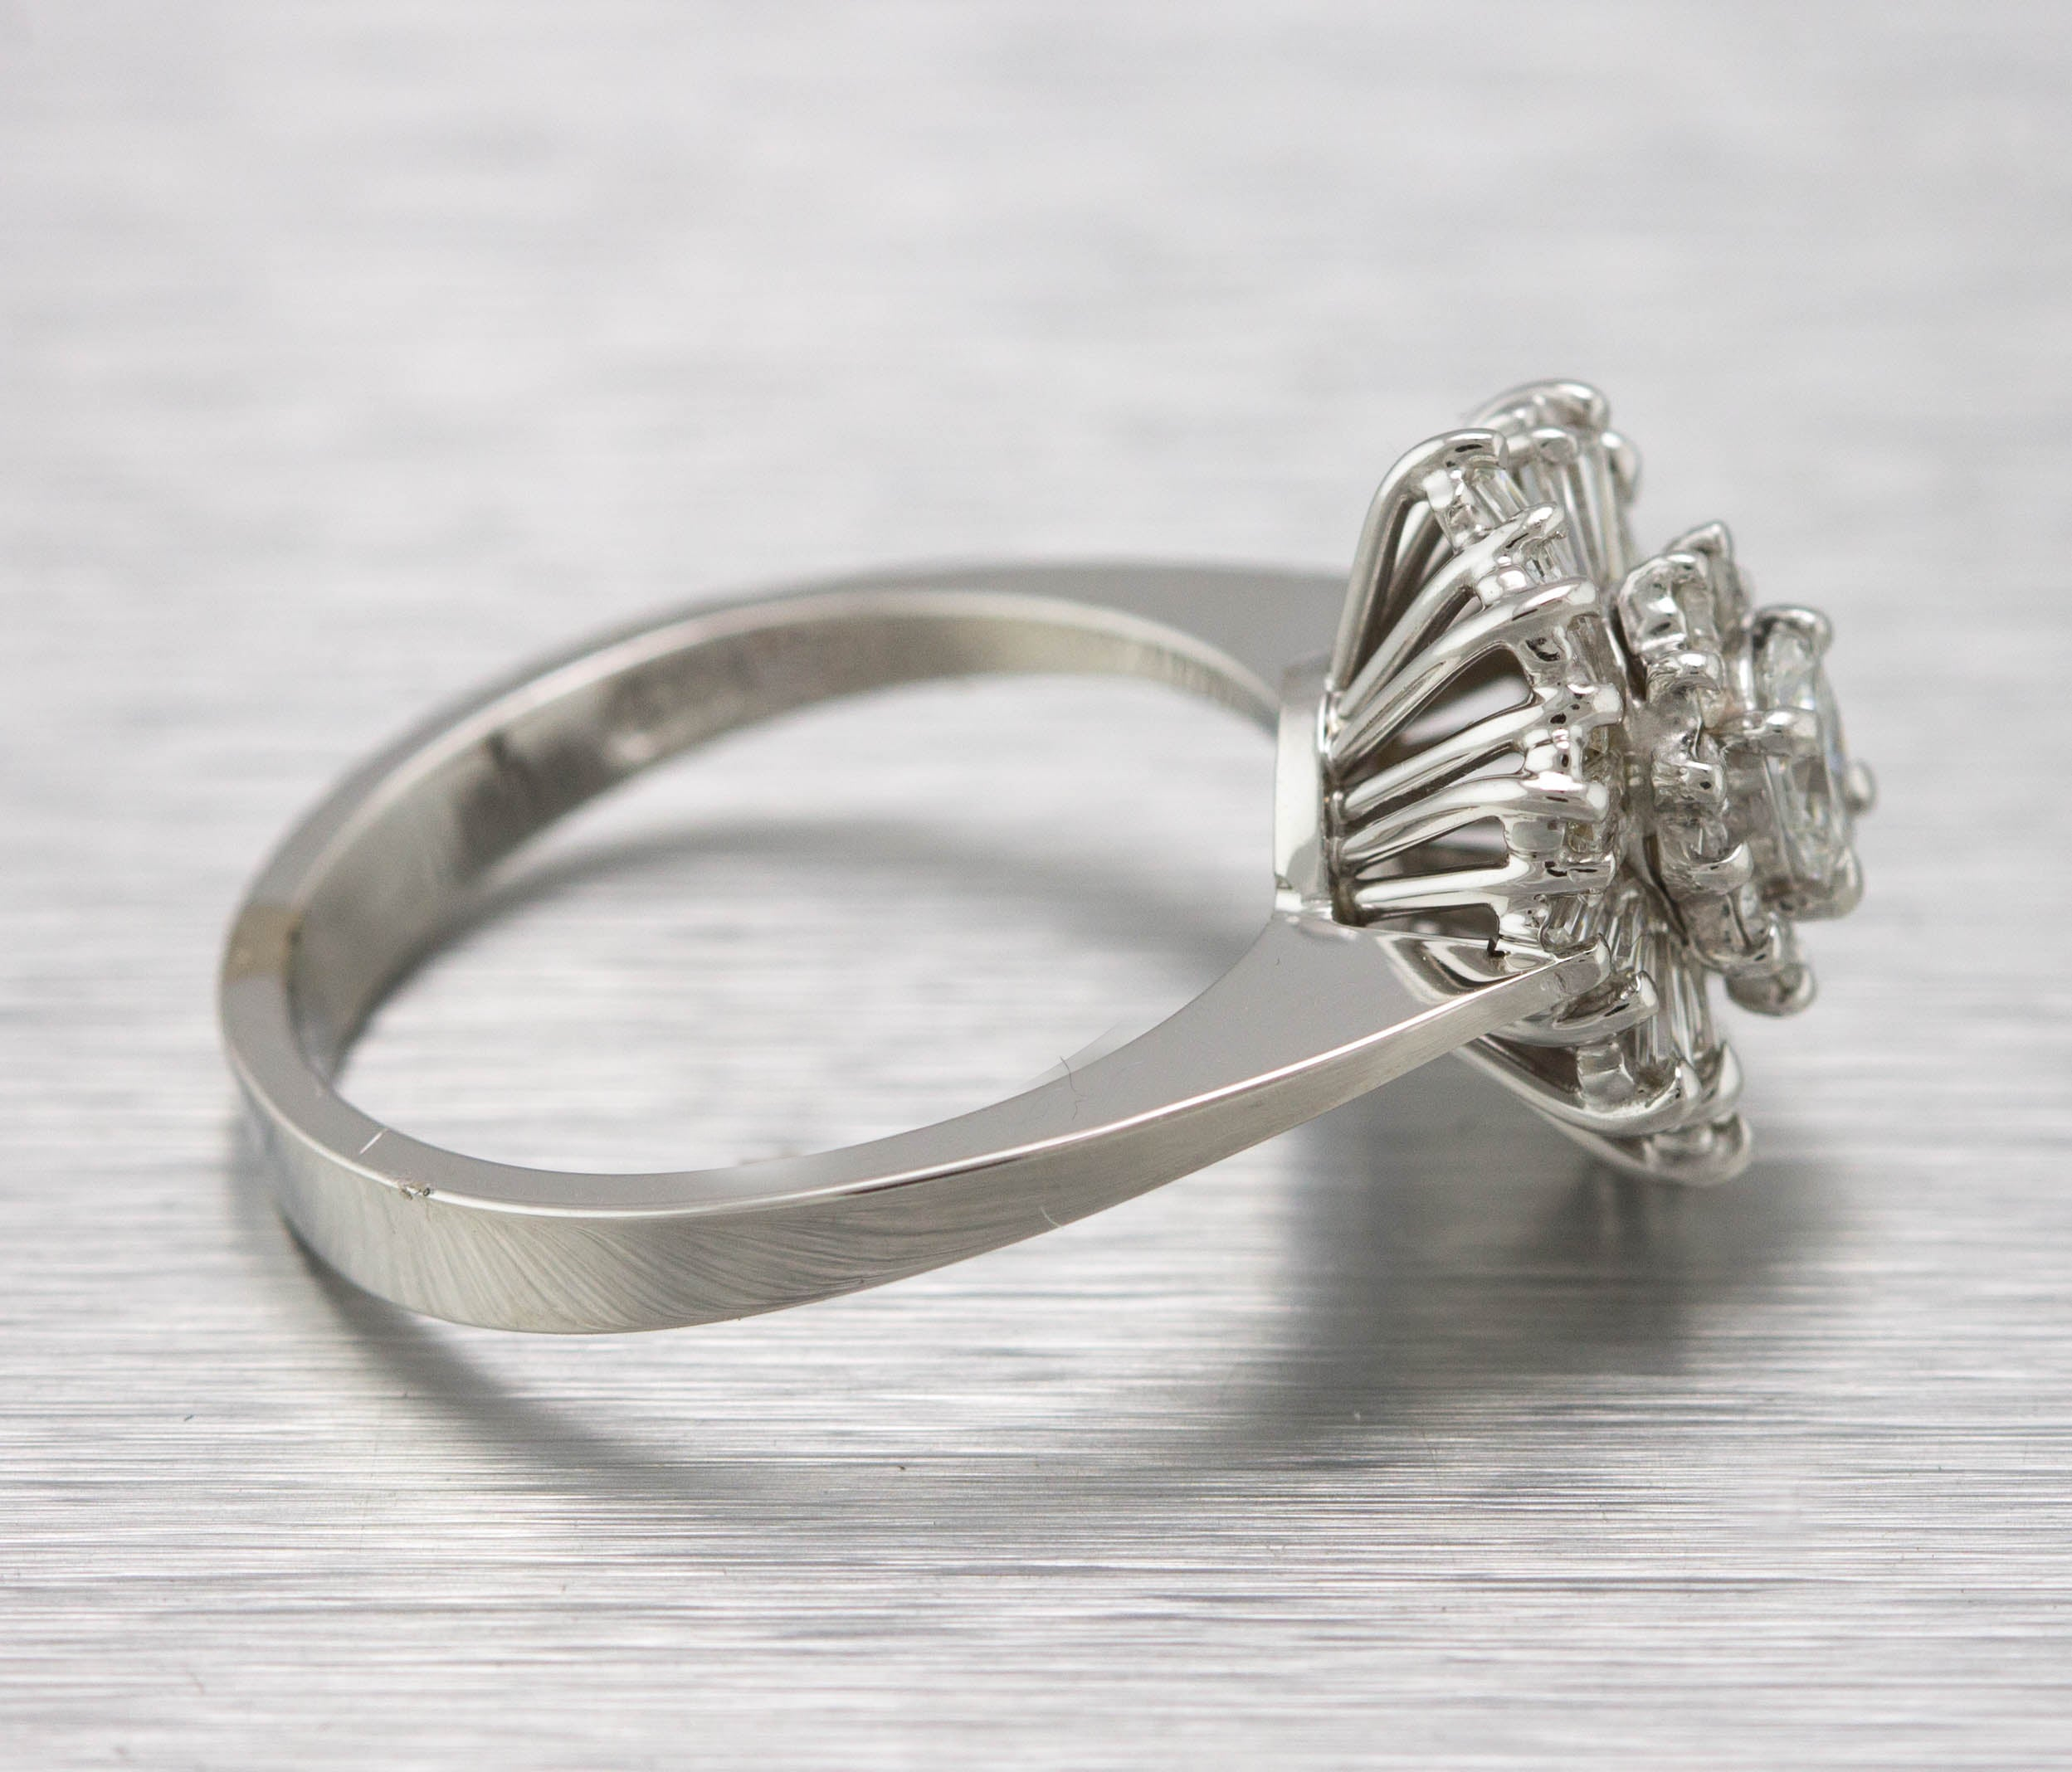 Ladies 14K White Gold 0.61ctw Baguette Cut Diamond Cluster Cocktail Ring